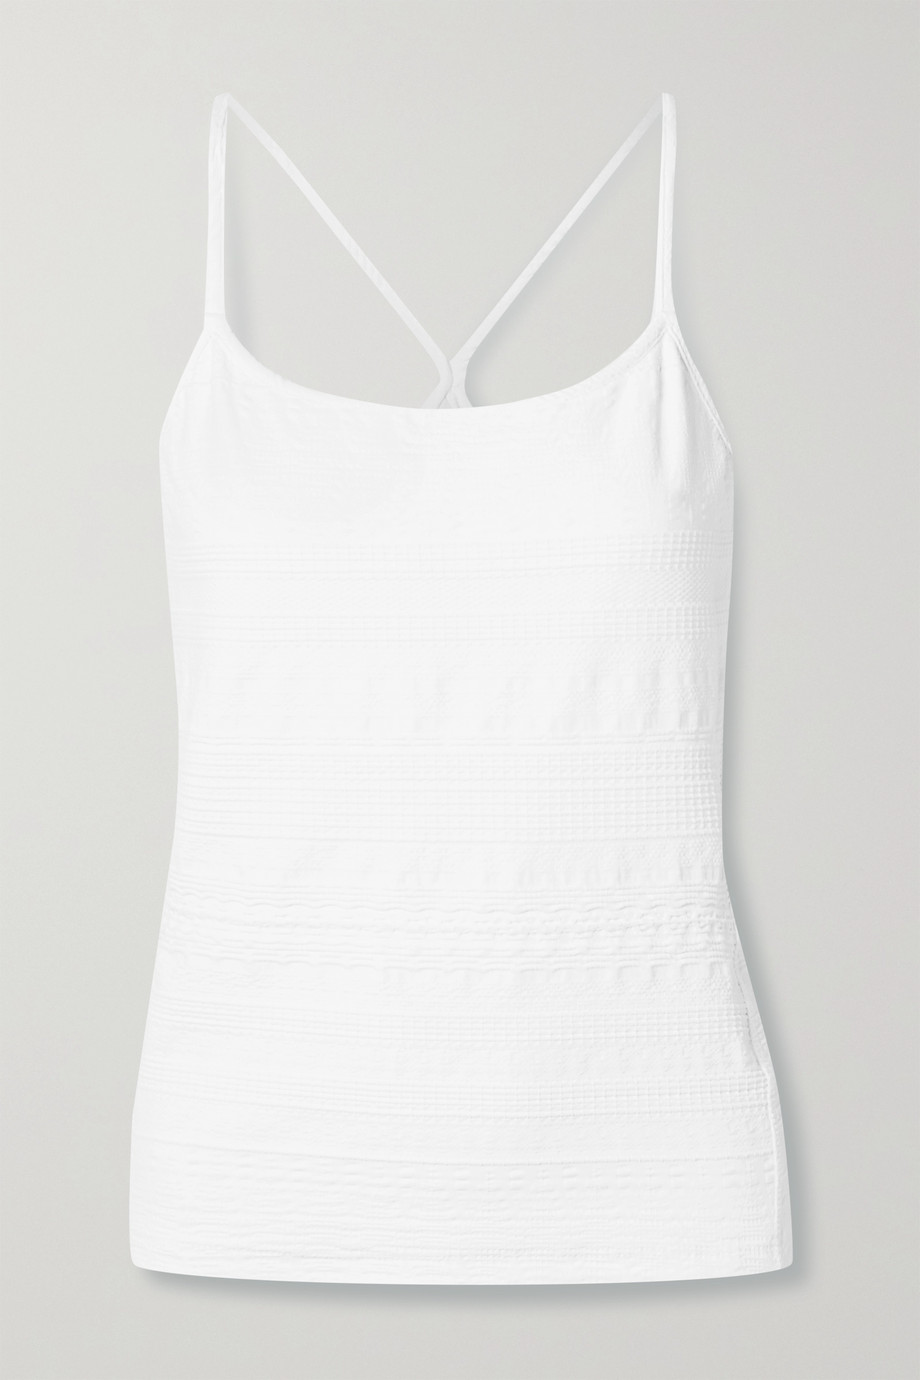 L'Etoile Sport Textured stretch-jersey tank